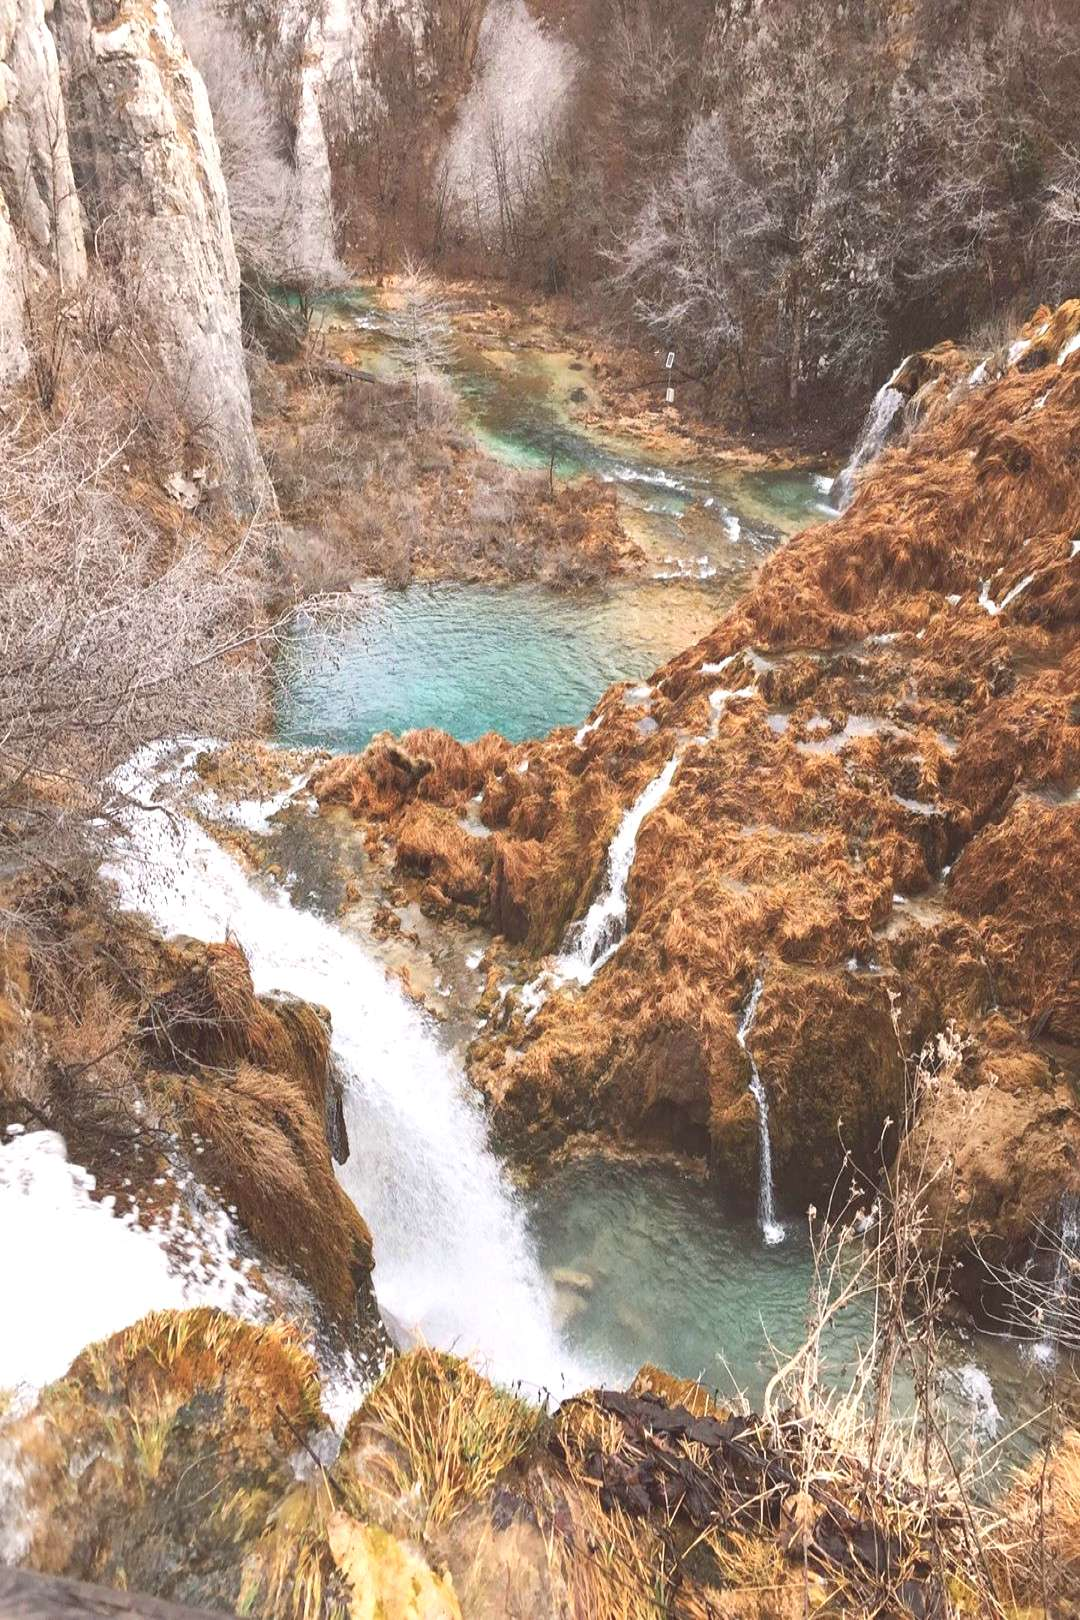 The Plitvice Lakes National Park is the oldest and largest nation